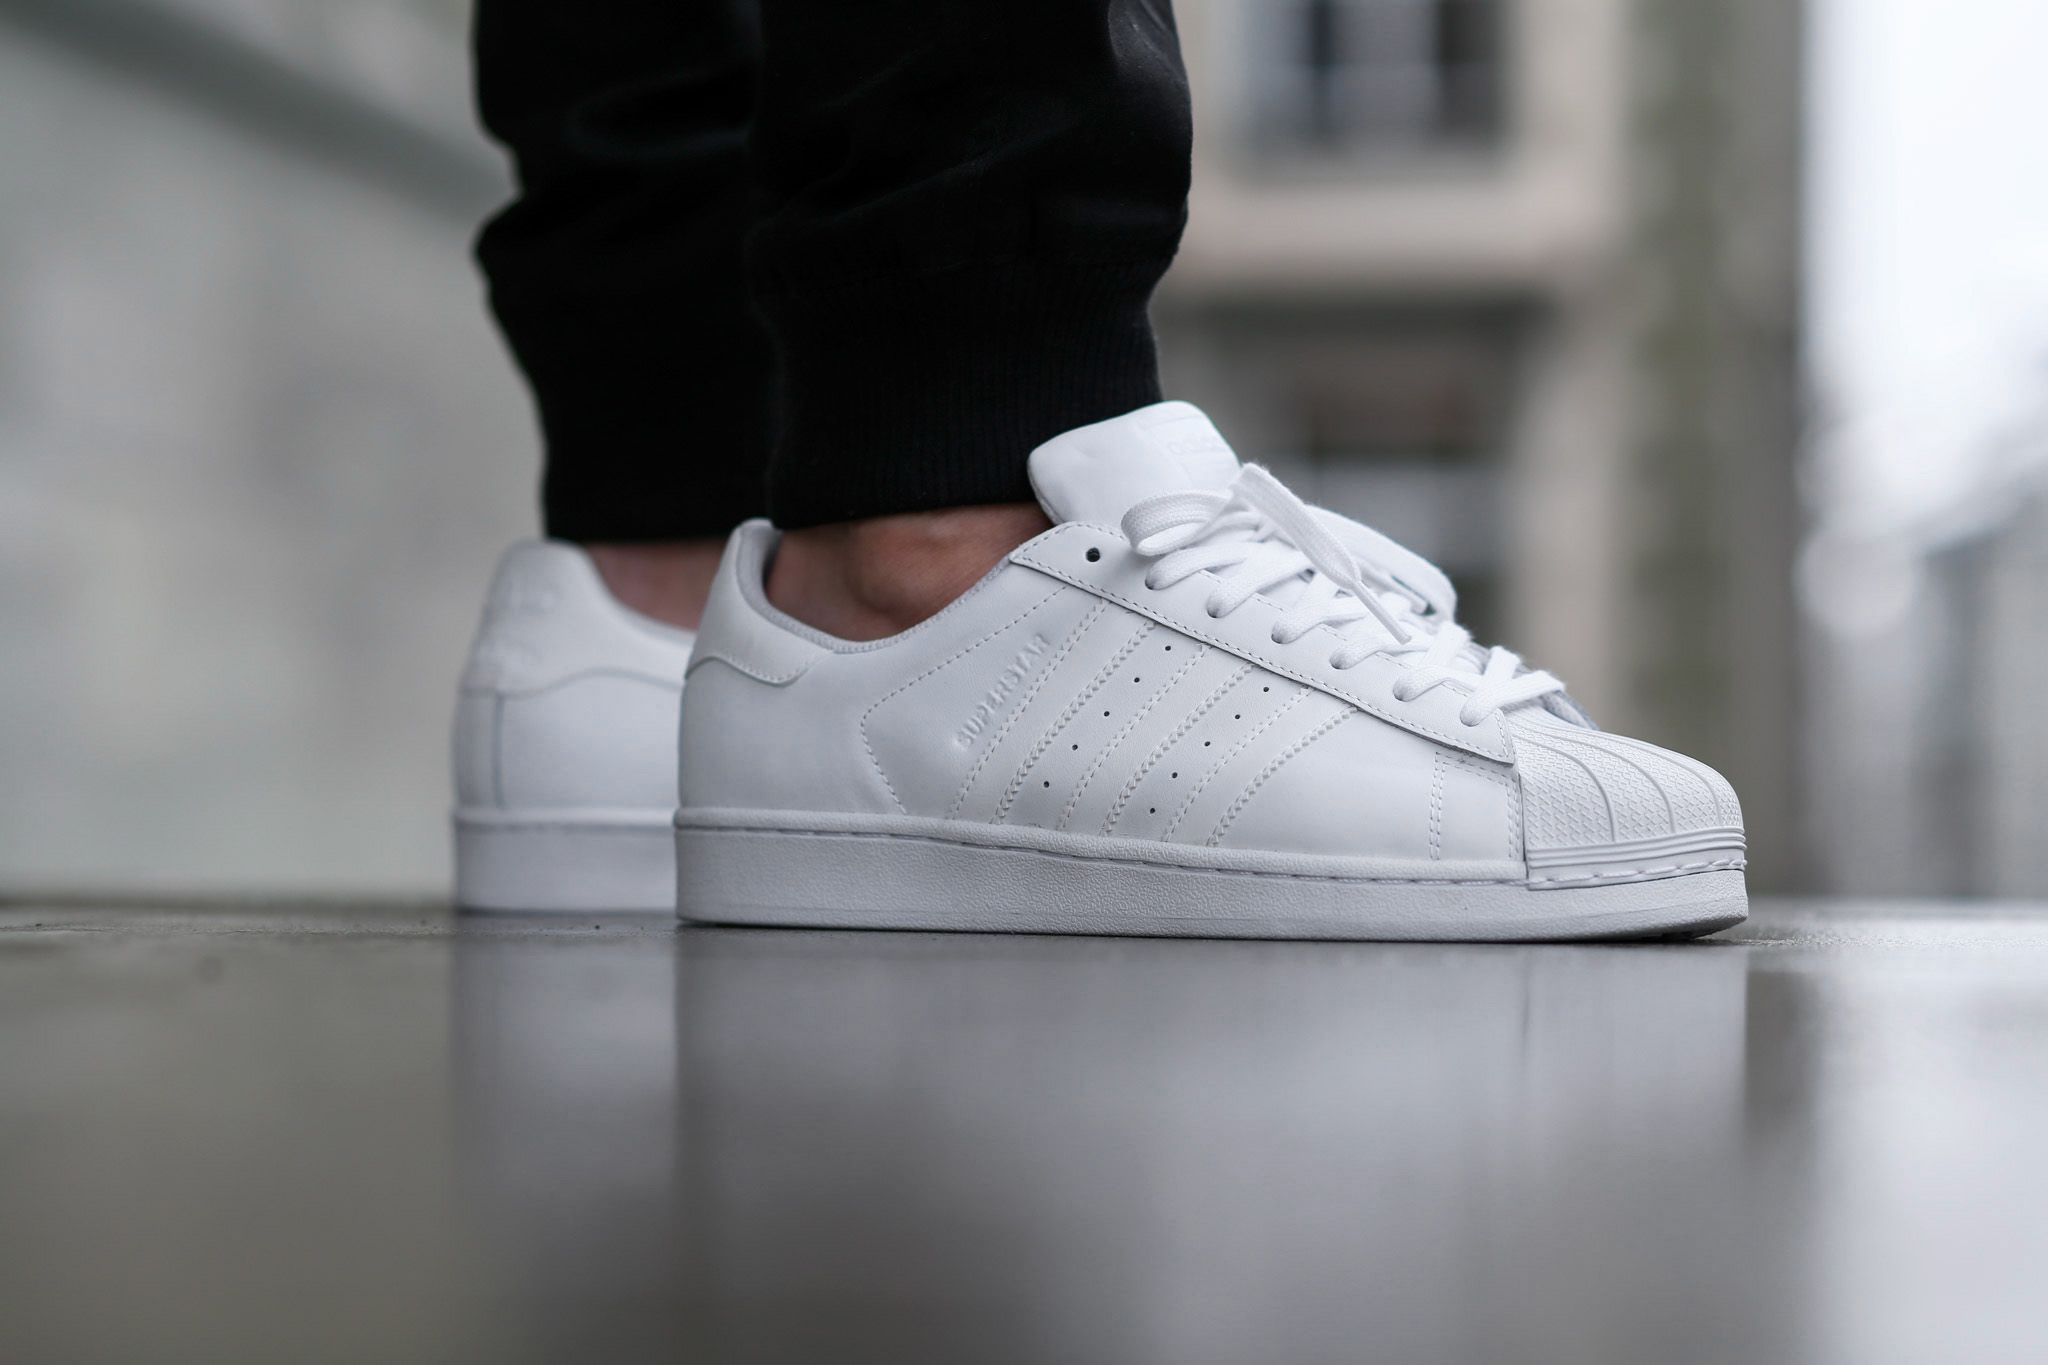 efeac909a979 Adidas Superstar Foundation   Sneakers in 2019   Adidas superstar ...